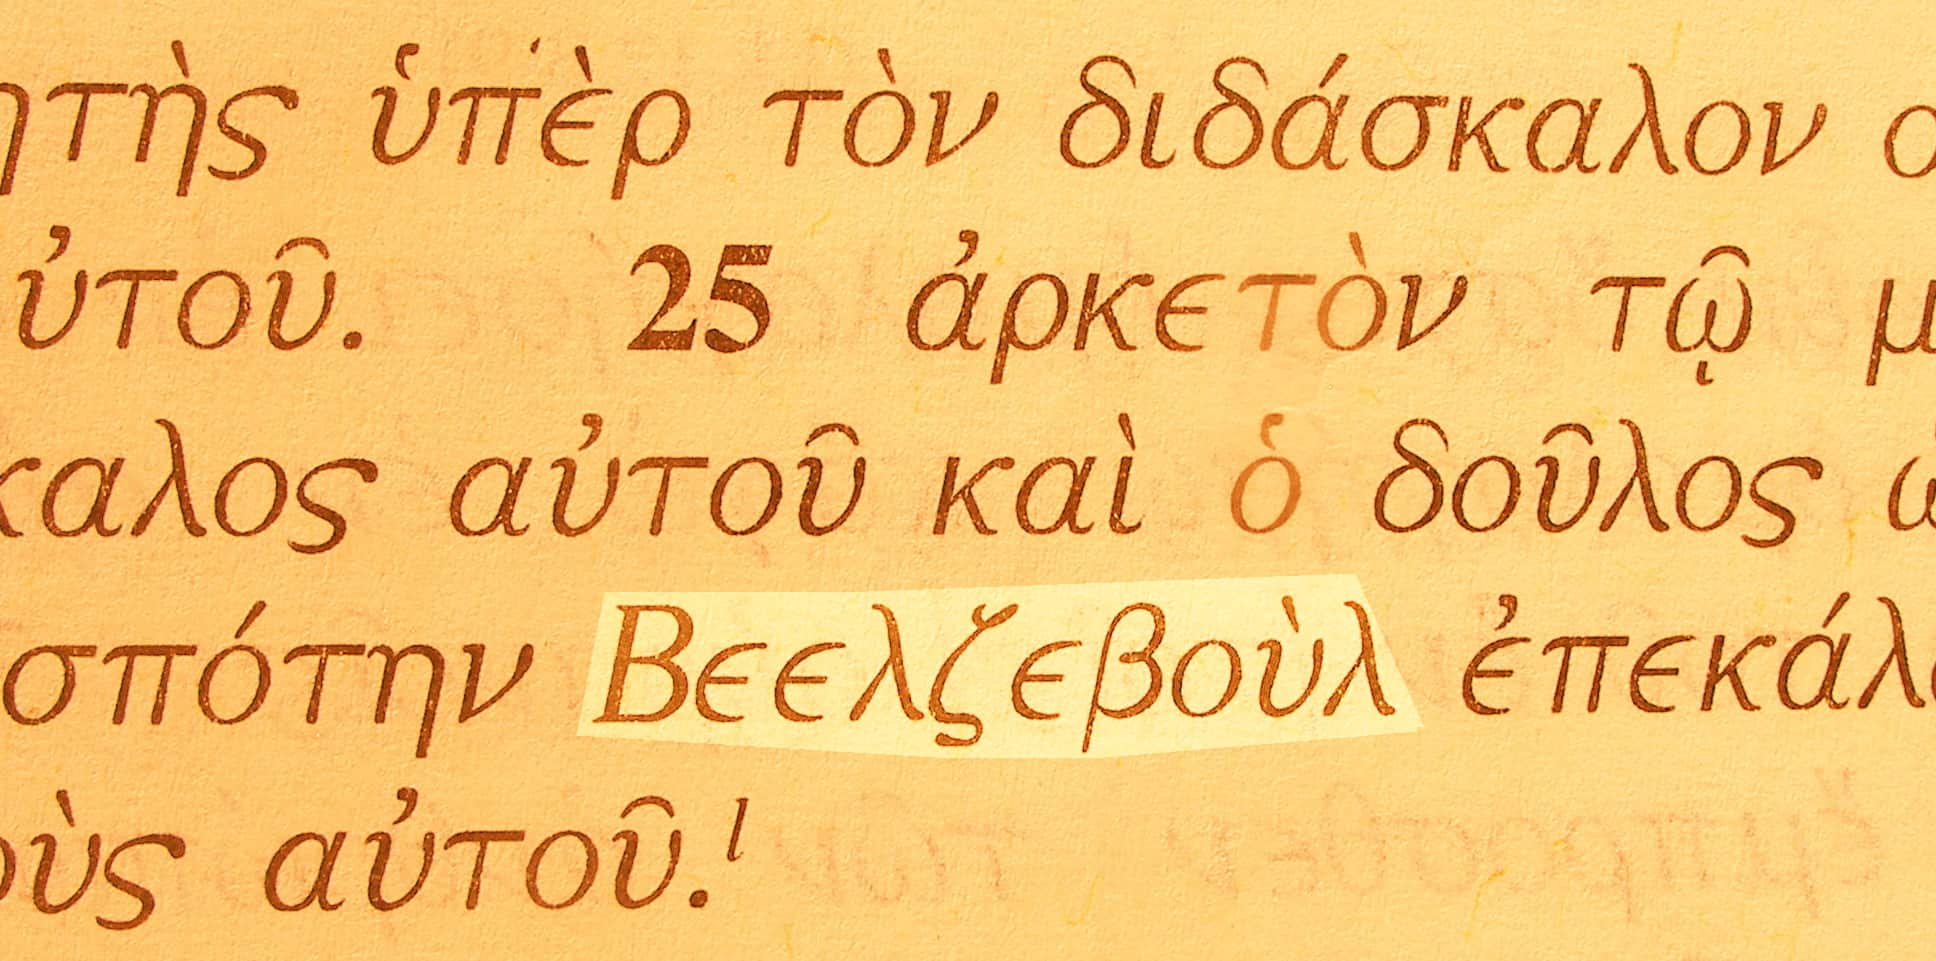 beelzebul an insulting name for jesus given by his enemies